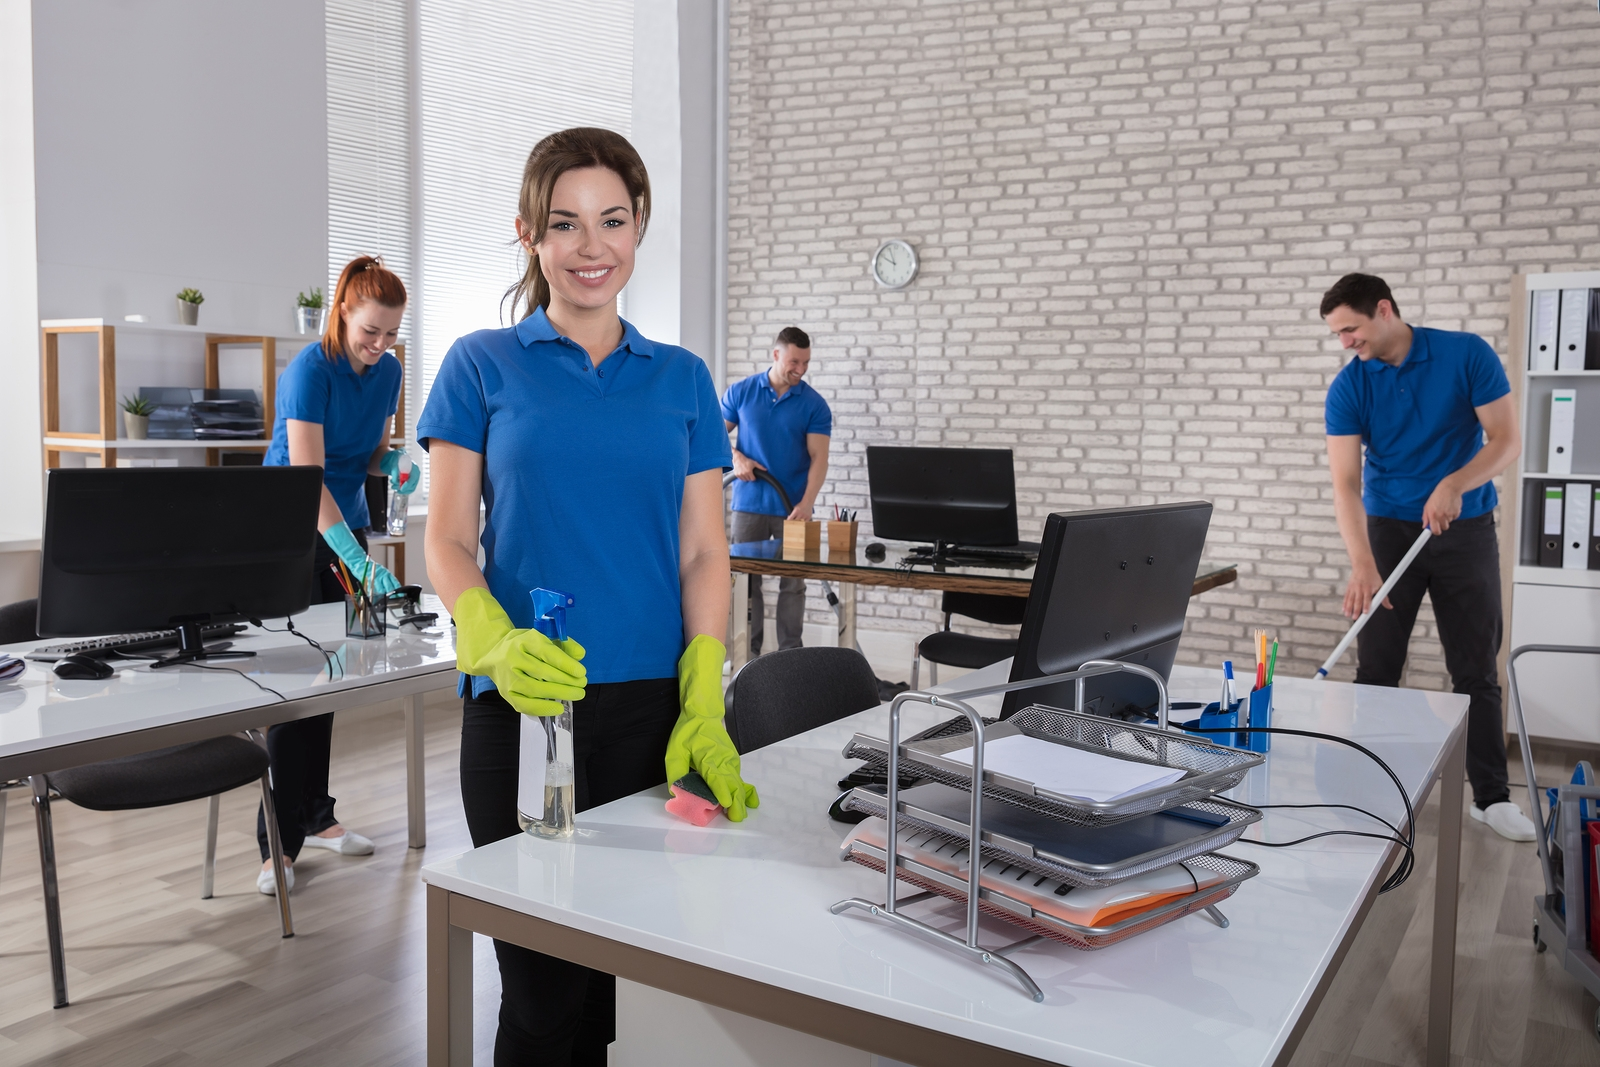 Hiring a Commercial Cleaning Company is a Wise Business Investment